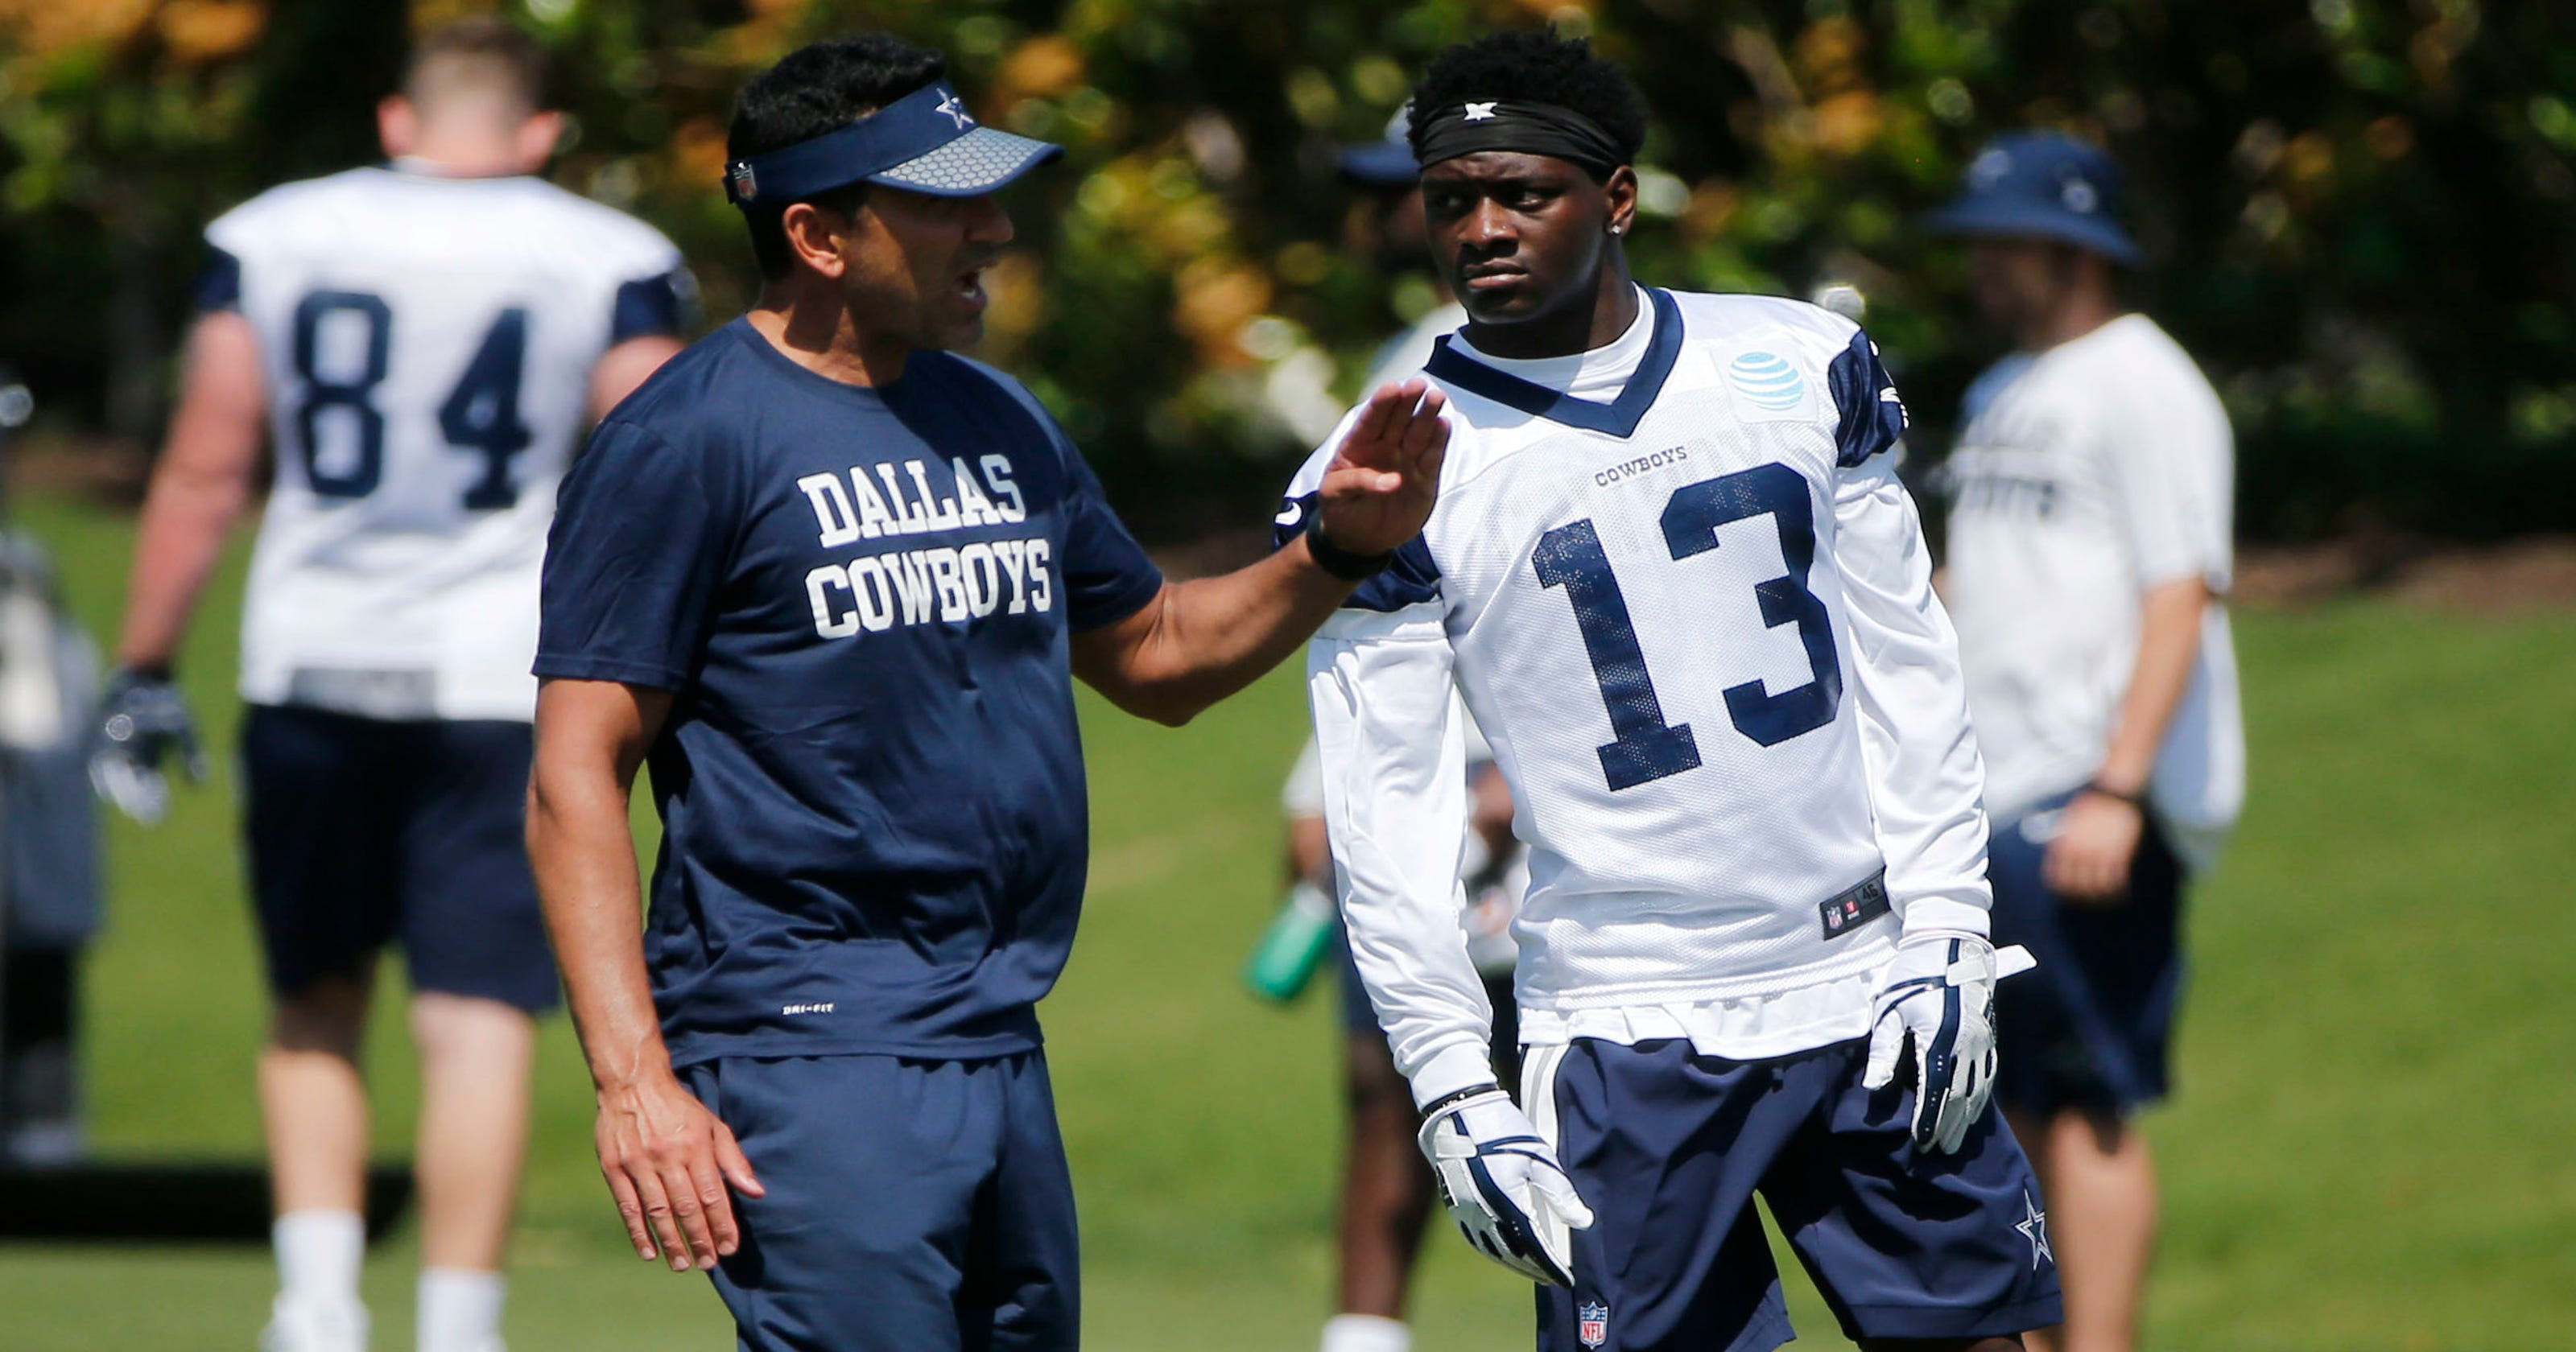 Michael Gallup wants to be  like  Dez Bryant but not  yet  ready to replace  him for Cowboys 578f50e8f9ed